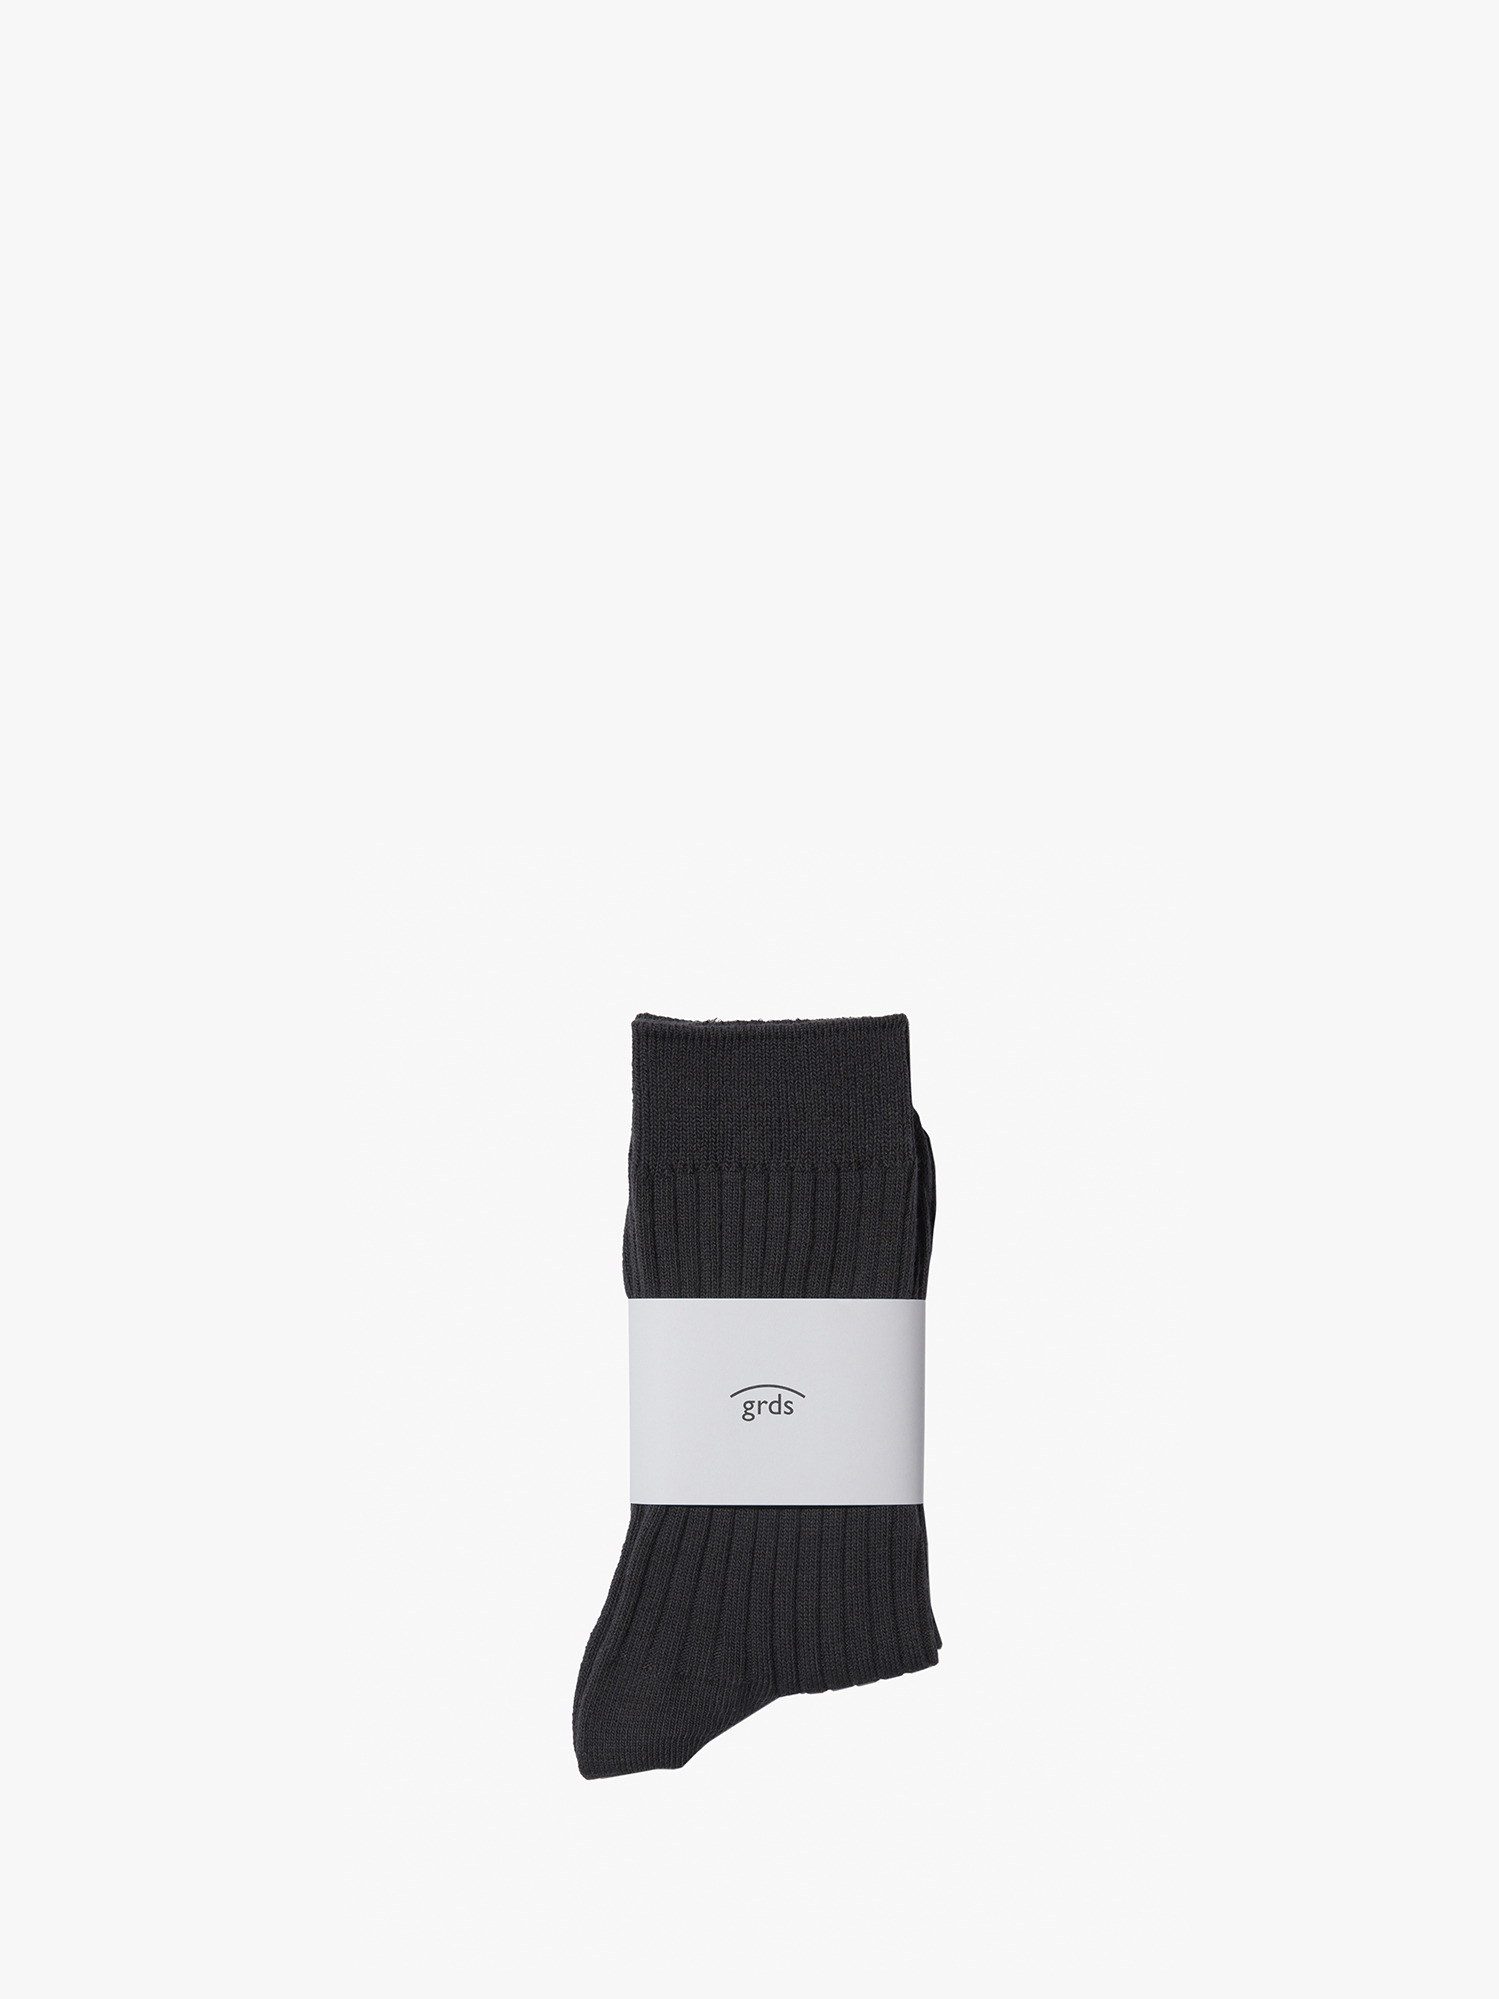 grds ribbed socks charcoal